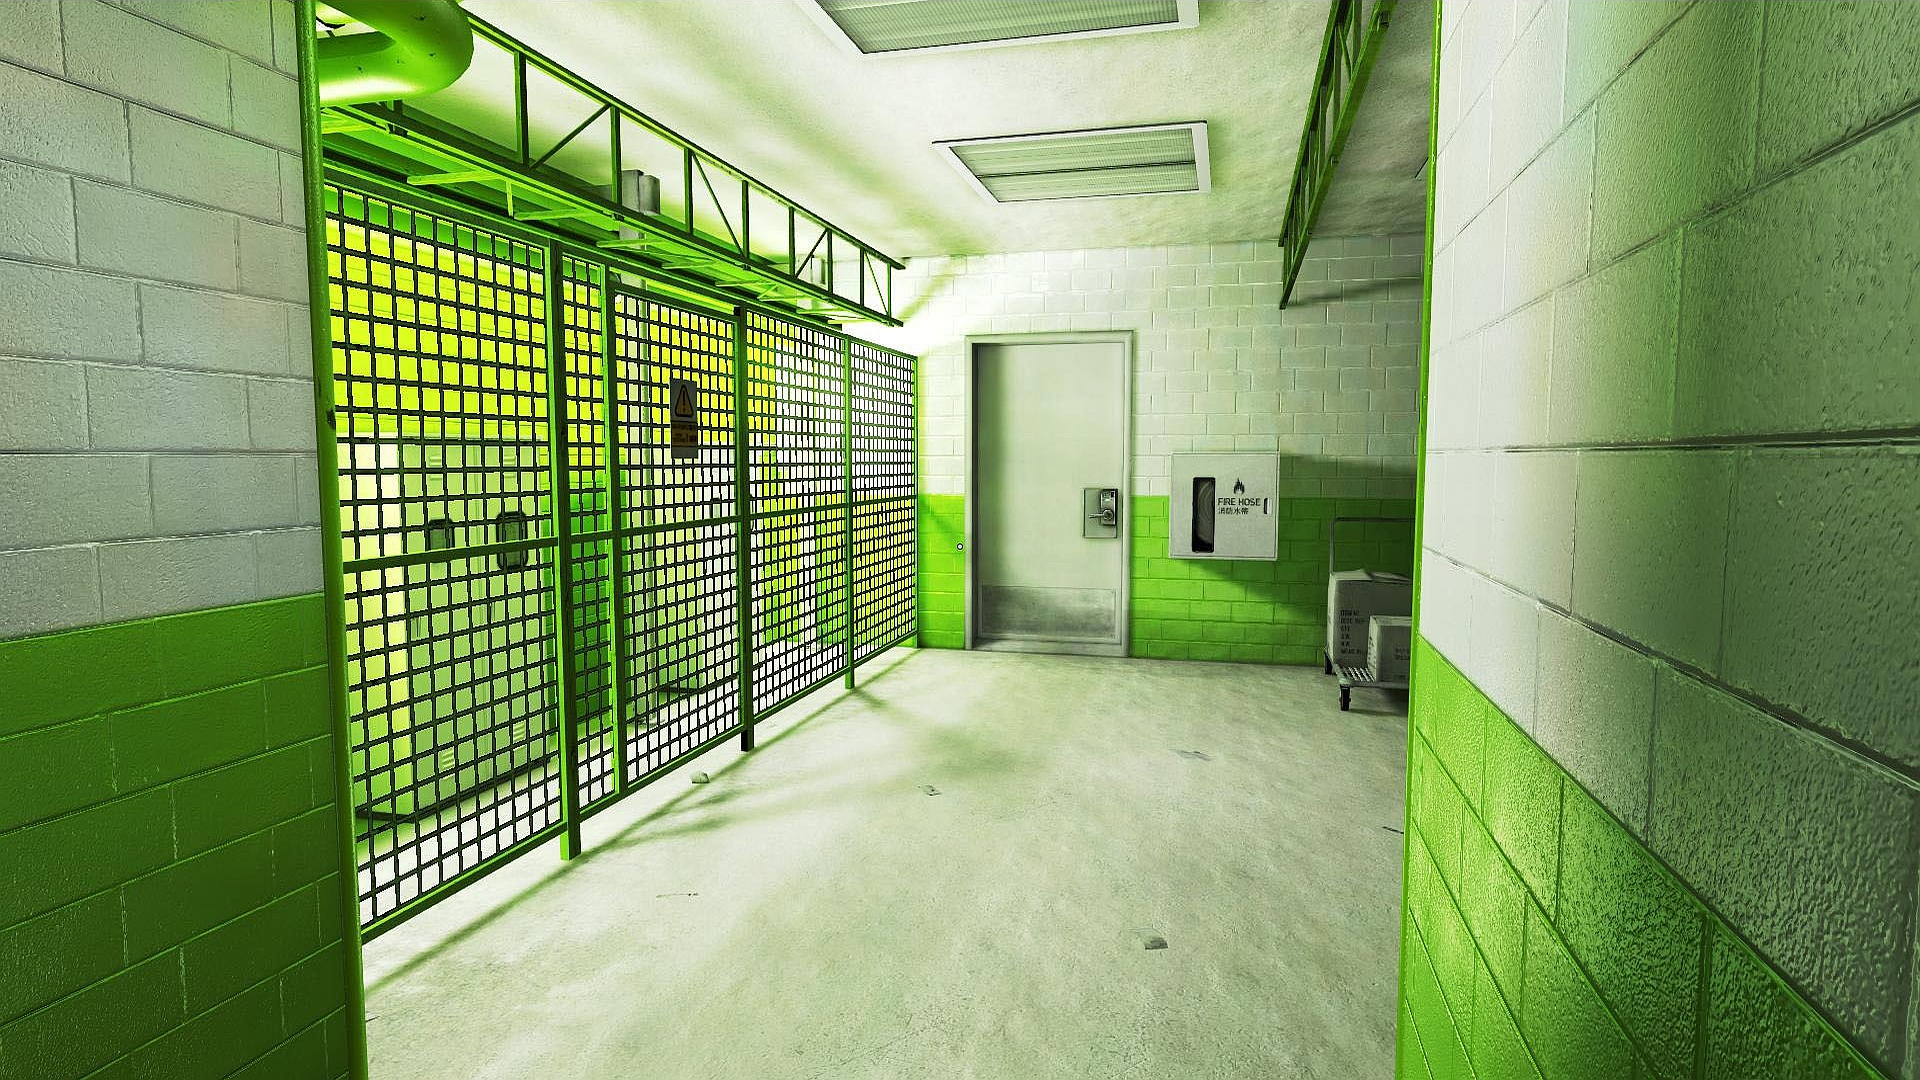 mirrors_edge_green_utility.jpg